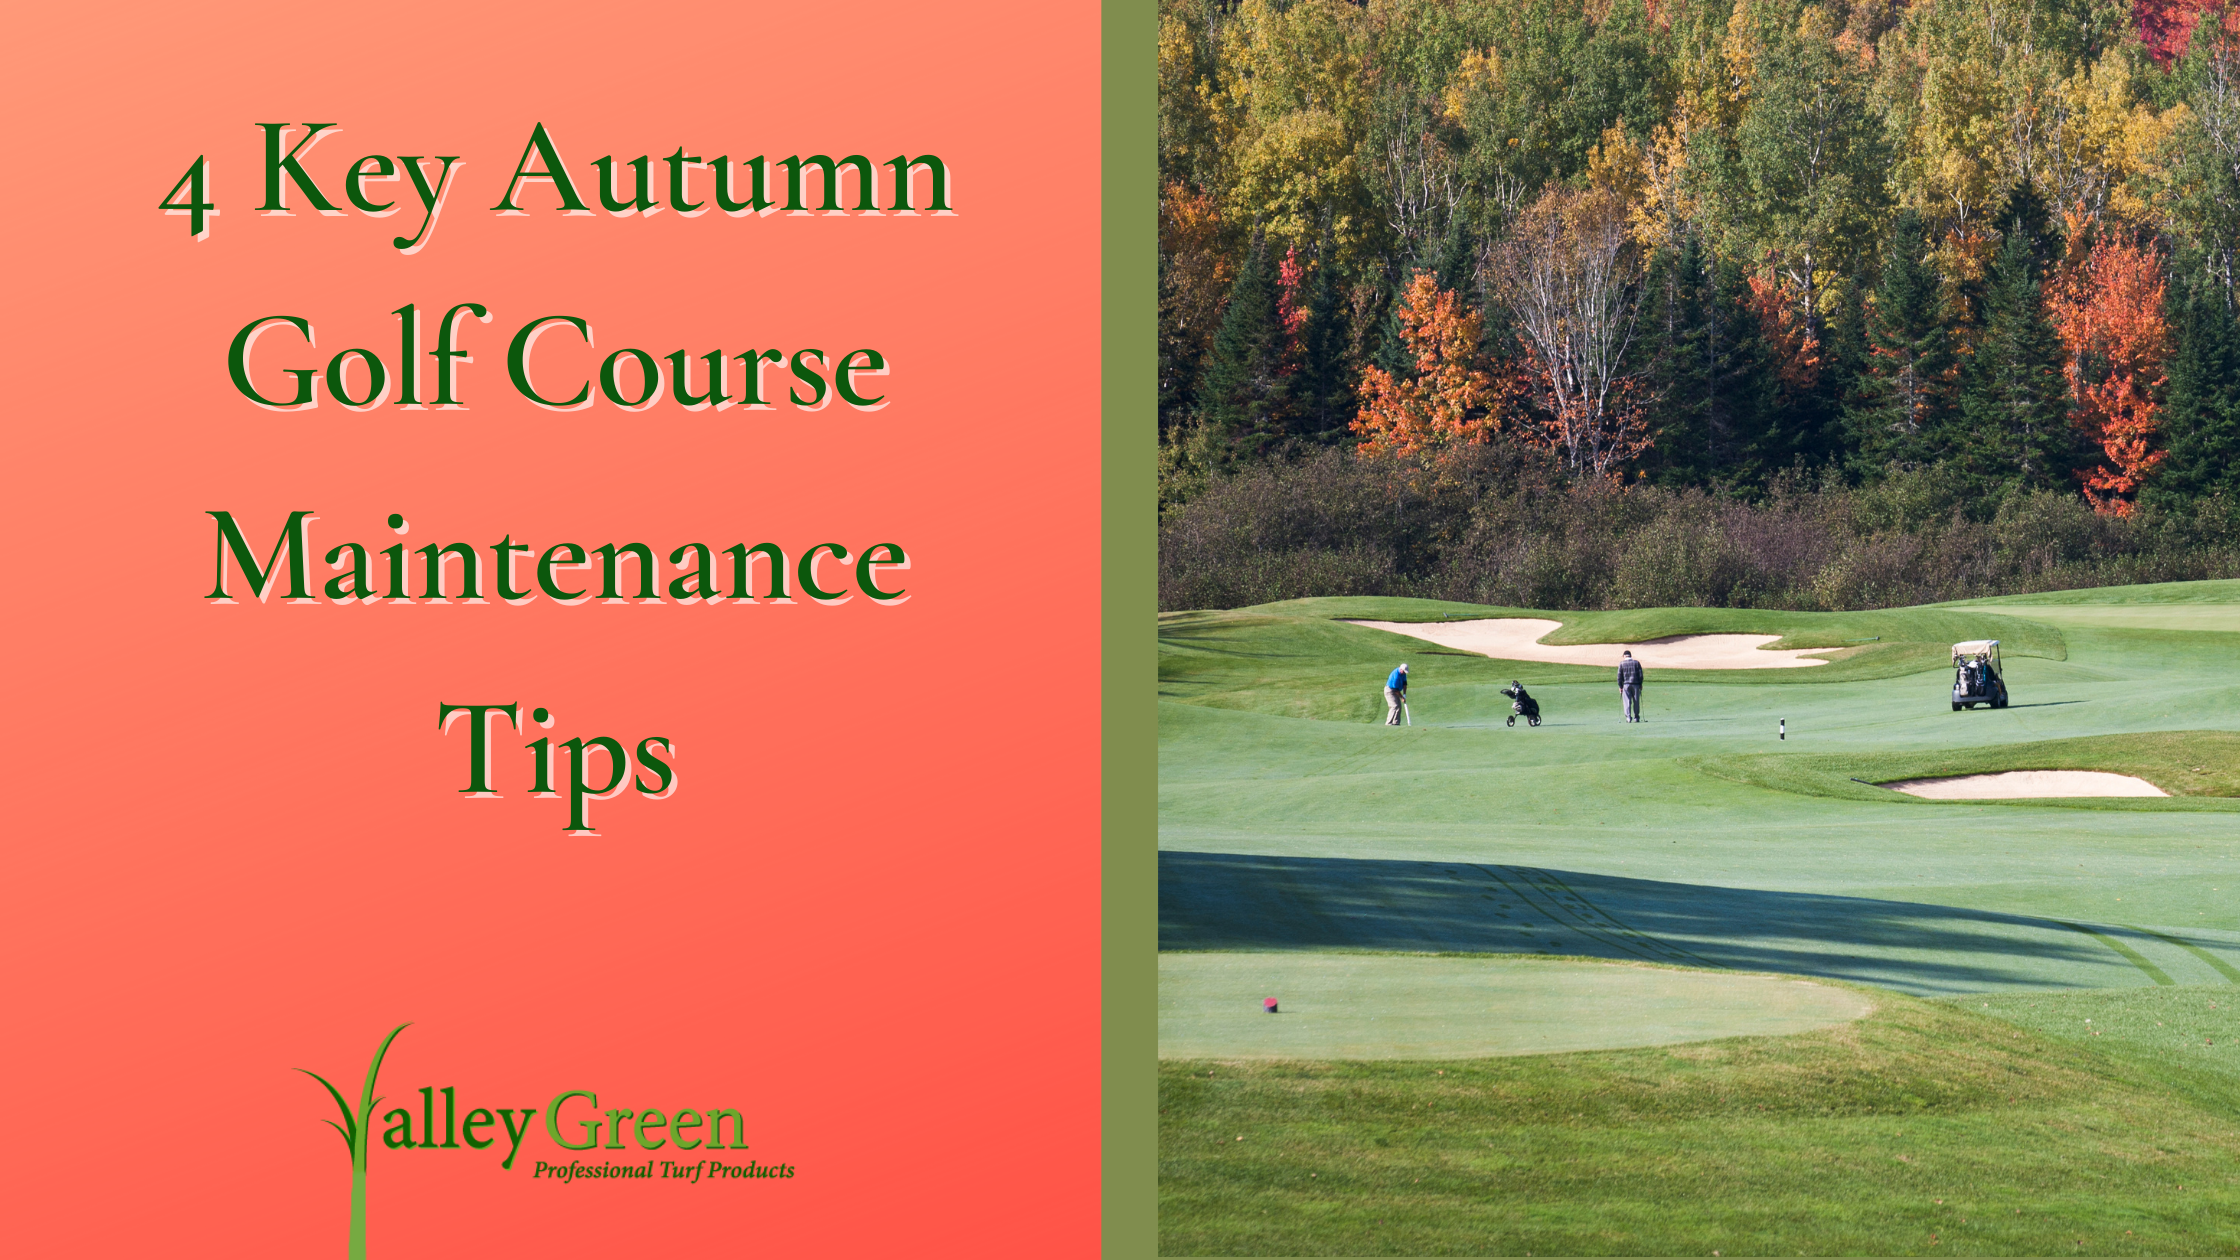 4 Key Autumn Golf Course Maintenance Tips